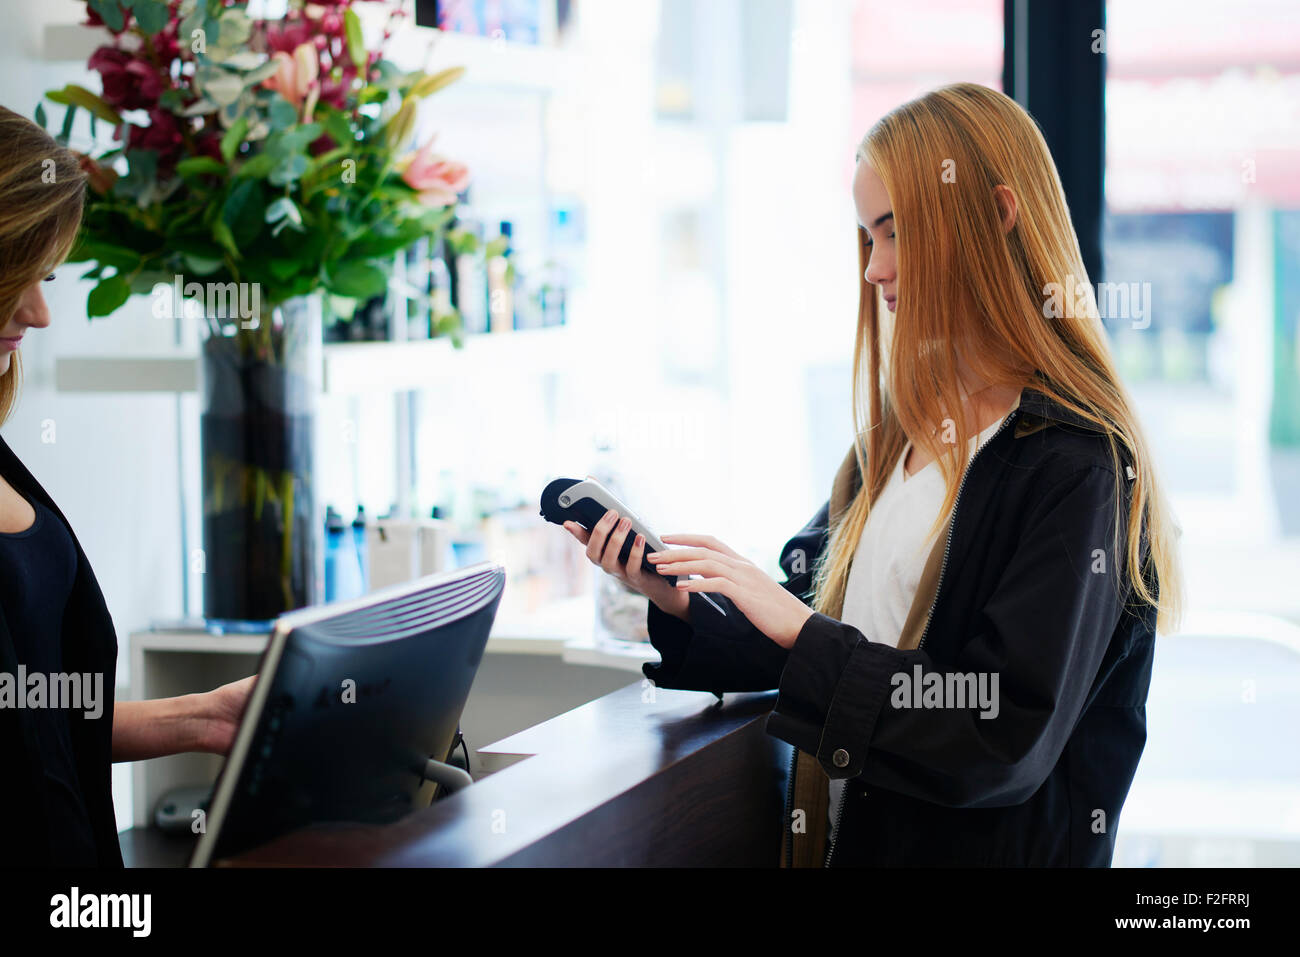 Woman paying with credit card reader at counter in hair salon Stock Photo